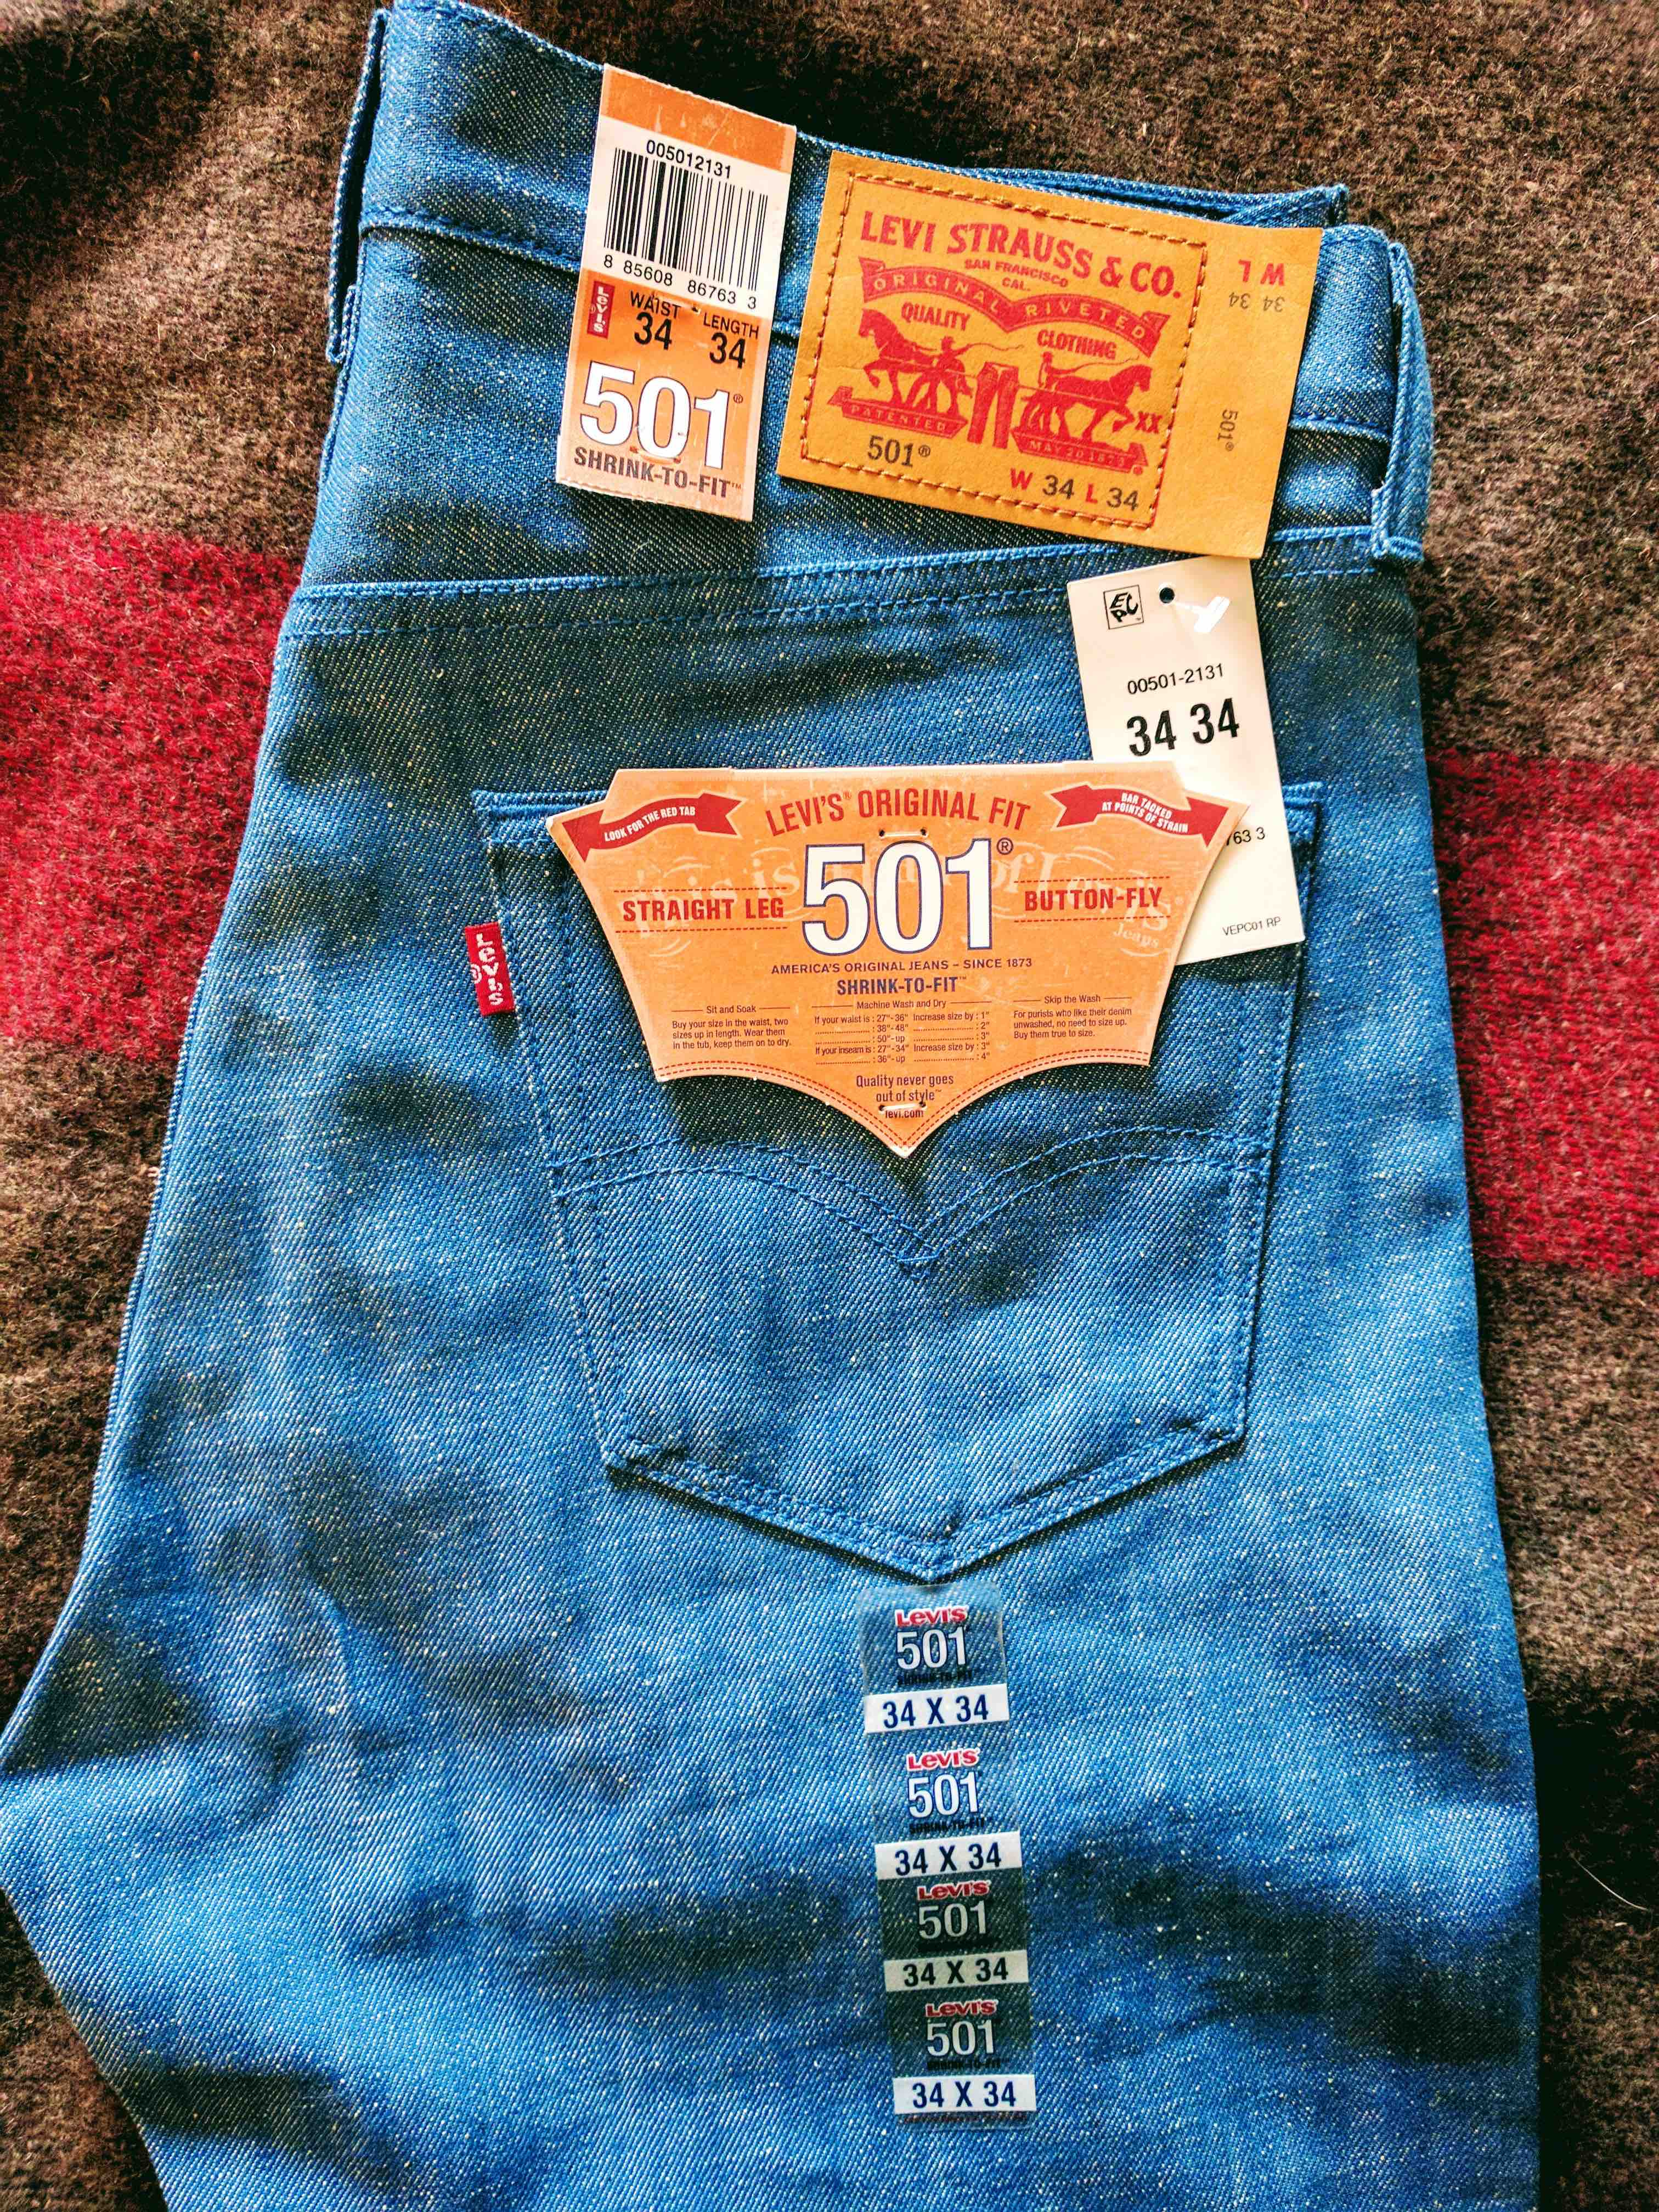 105e376a Levi's New Levis 501 Unwashed White Oak Cone Mills Supper Neppy ...